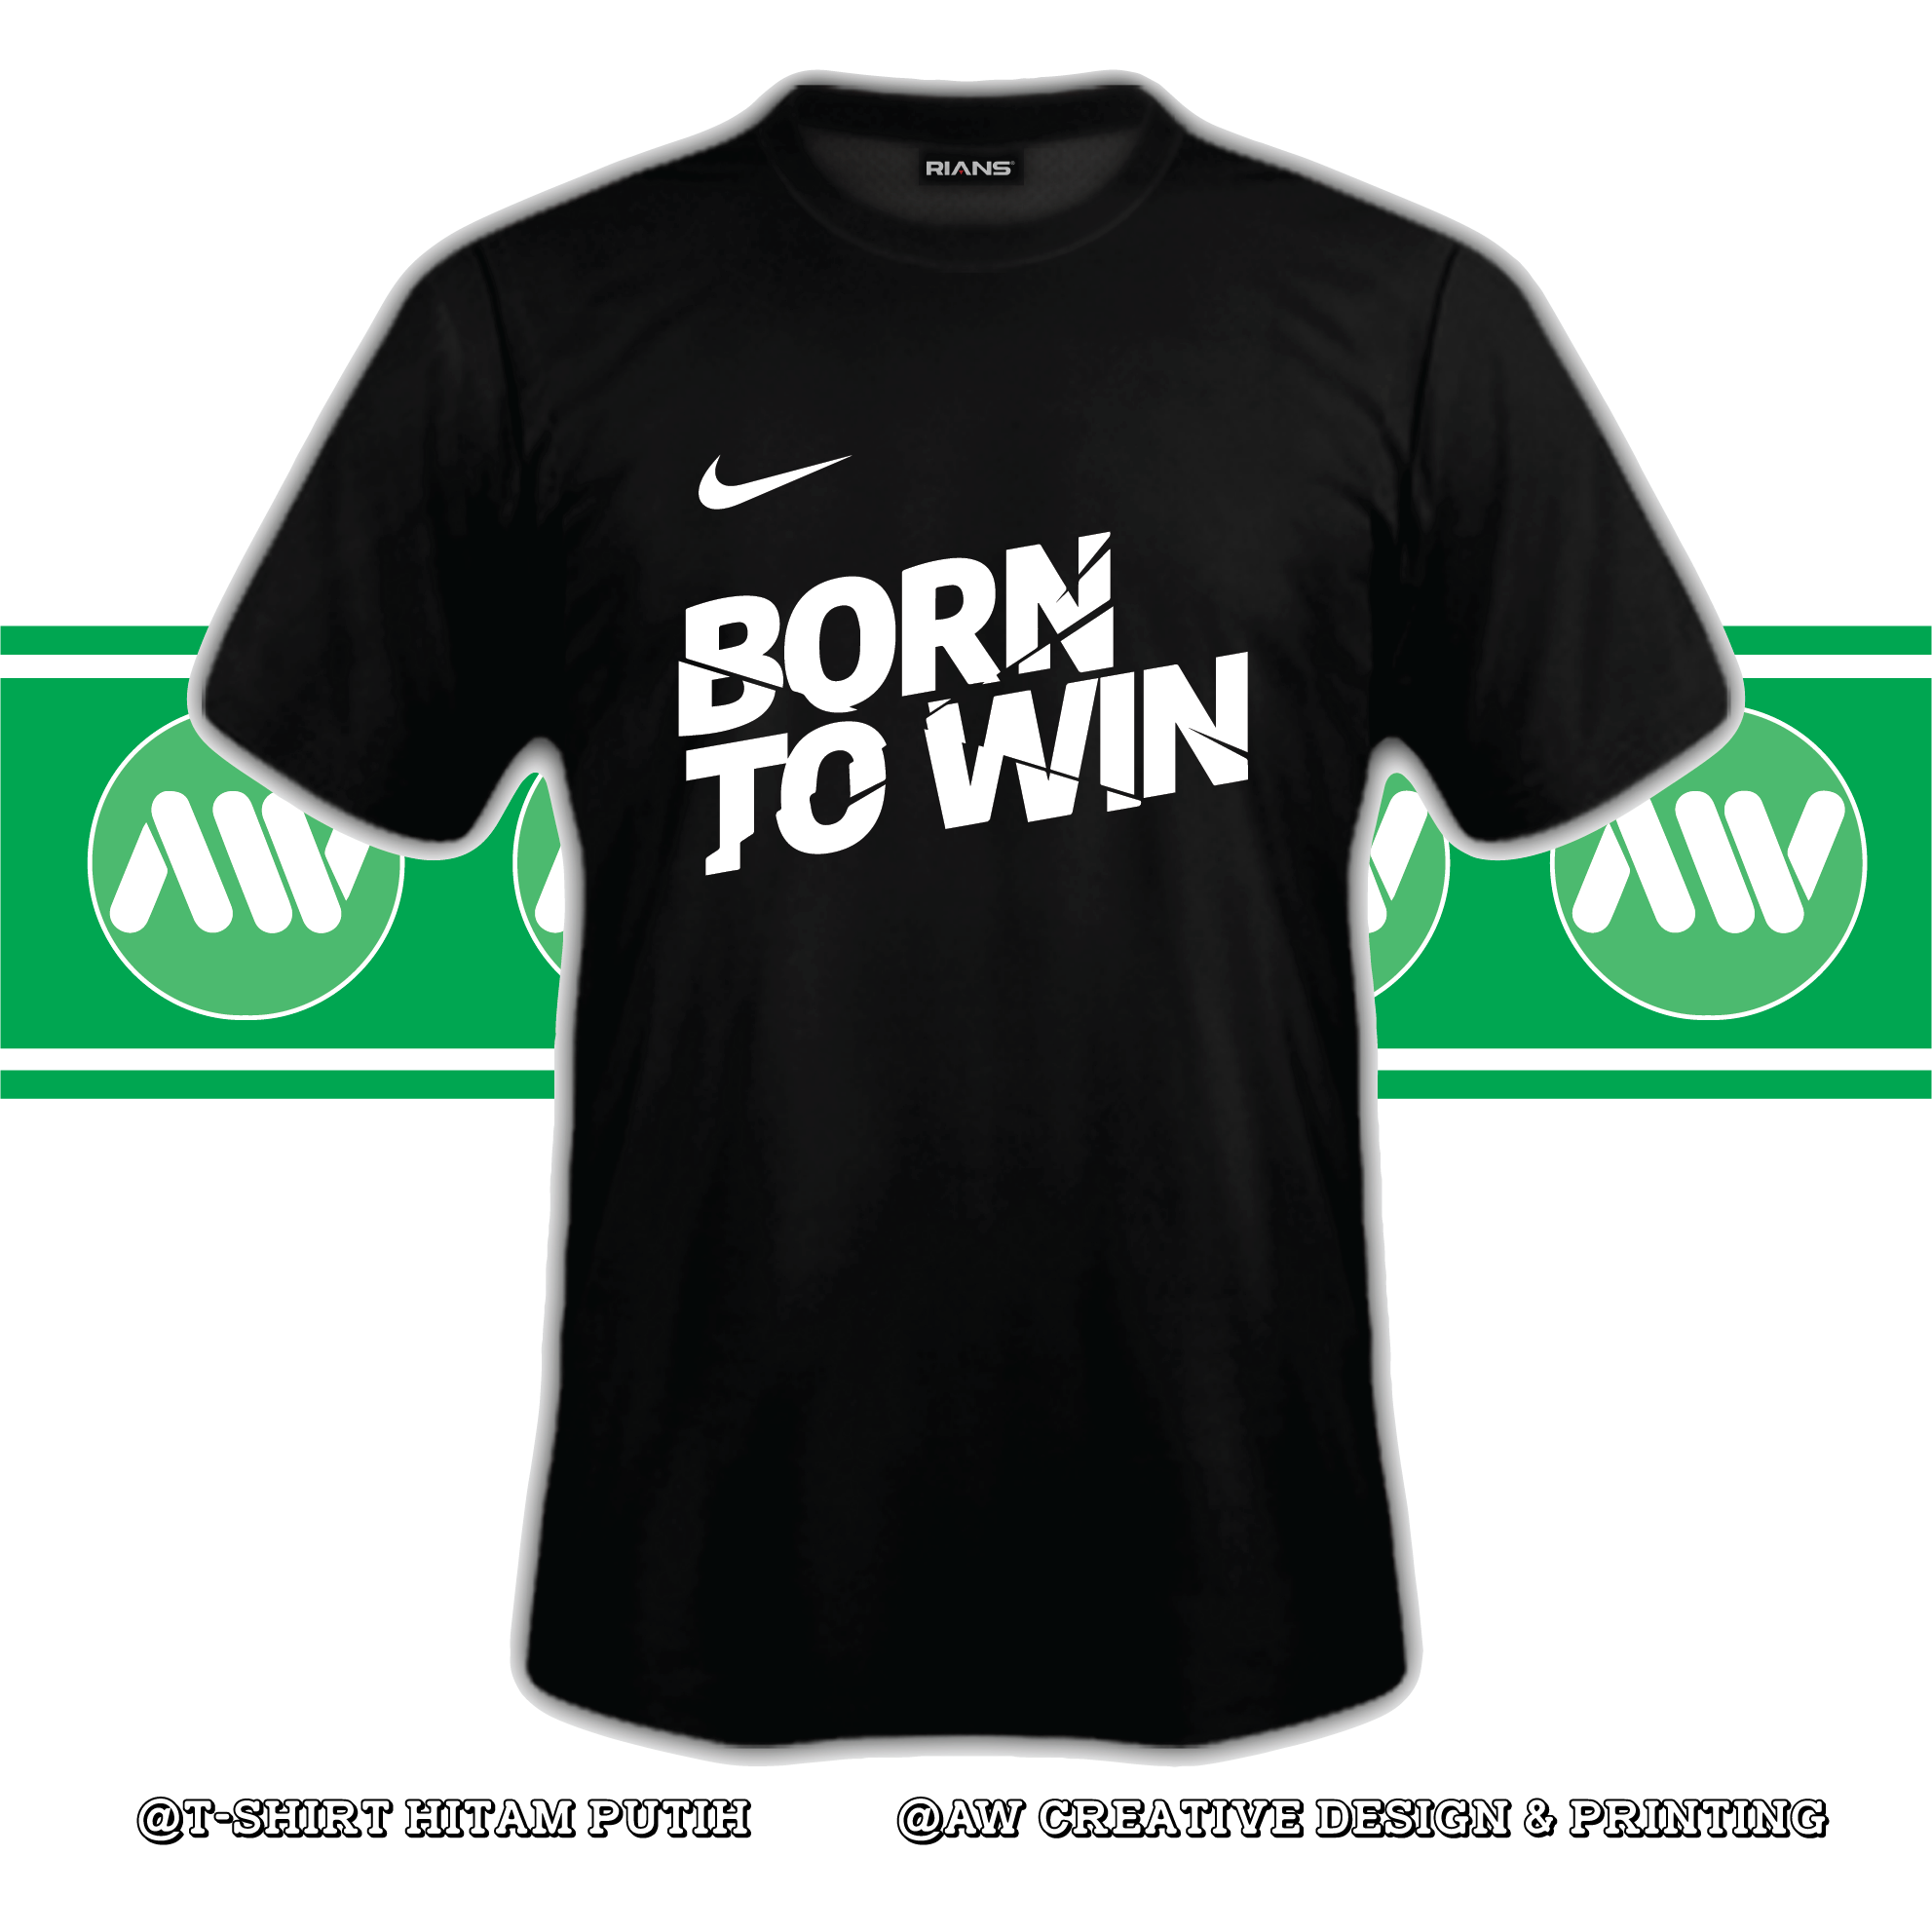 T-Shirt Born To Win 100% Cotton Baju Tshirt Black White Hitam Putih Bossku